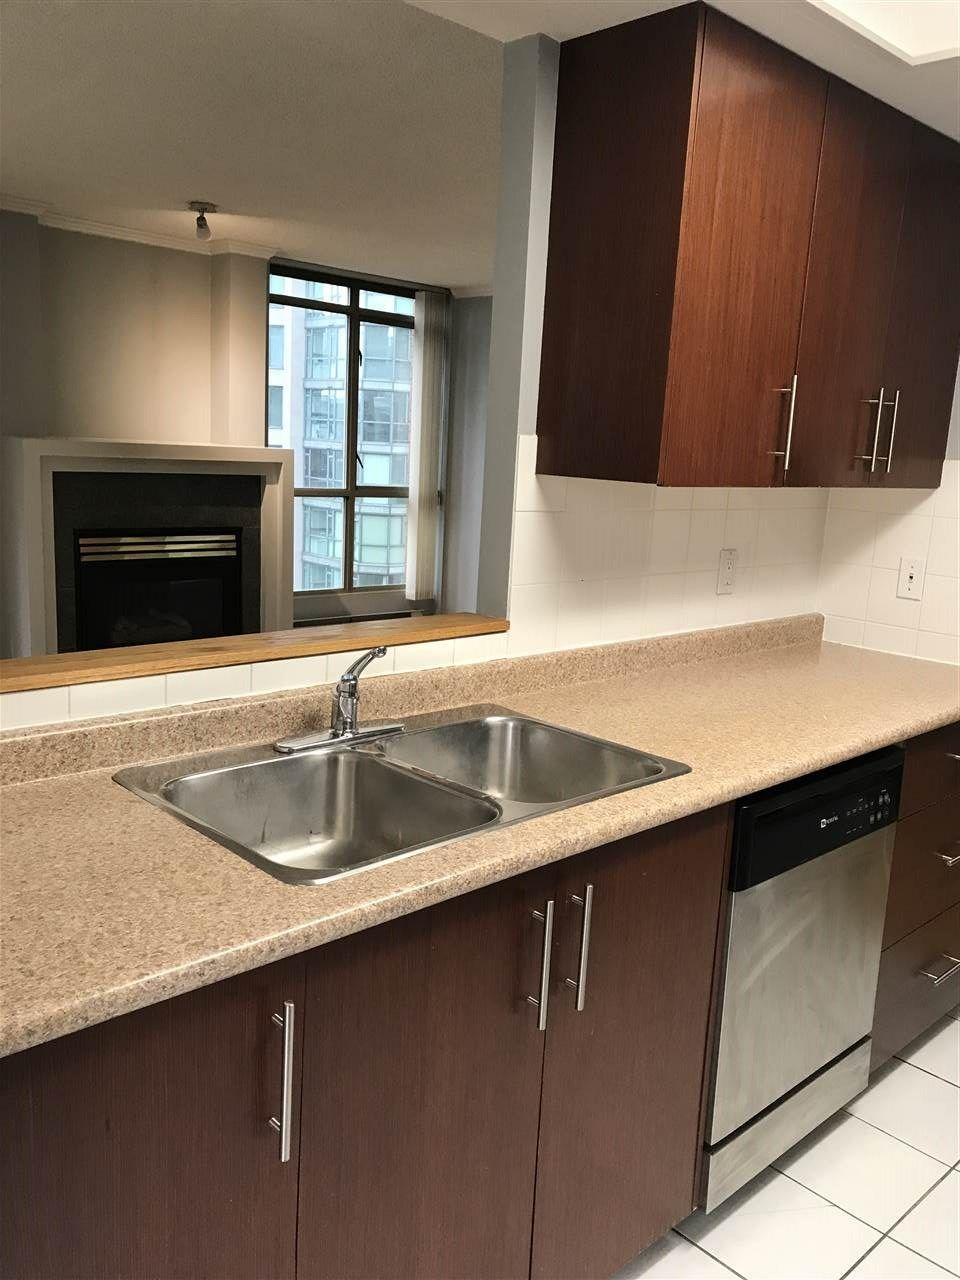 """Photo 3: Photos: 1001 867 HAMILTON Street in Vancouver: Downtown VW Condo for sale in """"JARDINE'S LOOKOUT"""" (Vancouver West)  : MLS®# R2248805"""